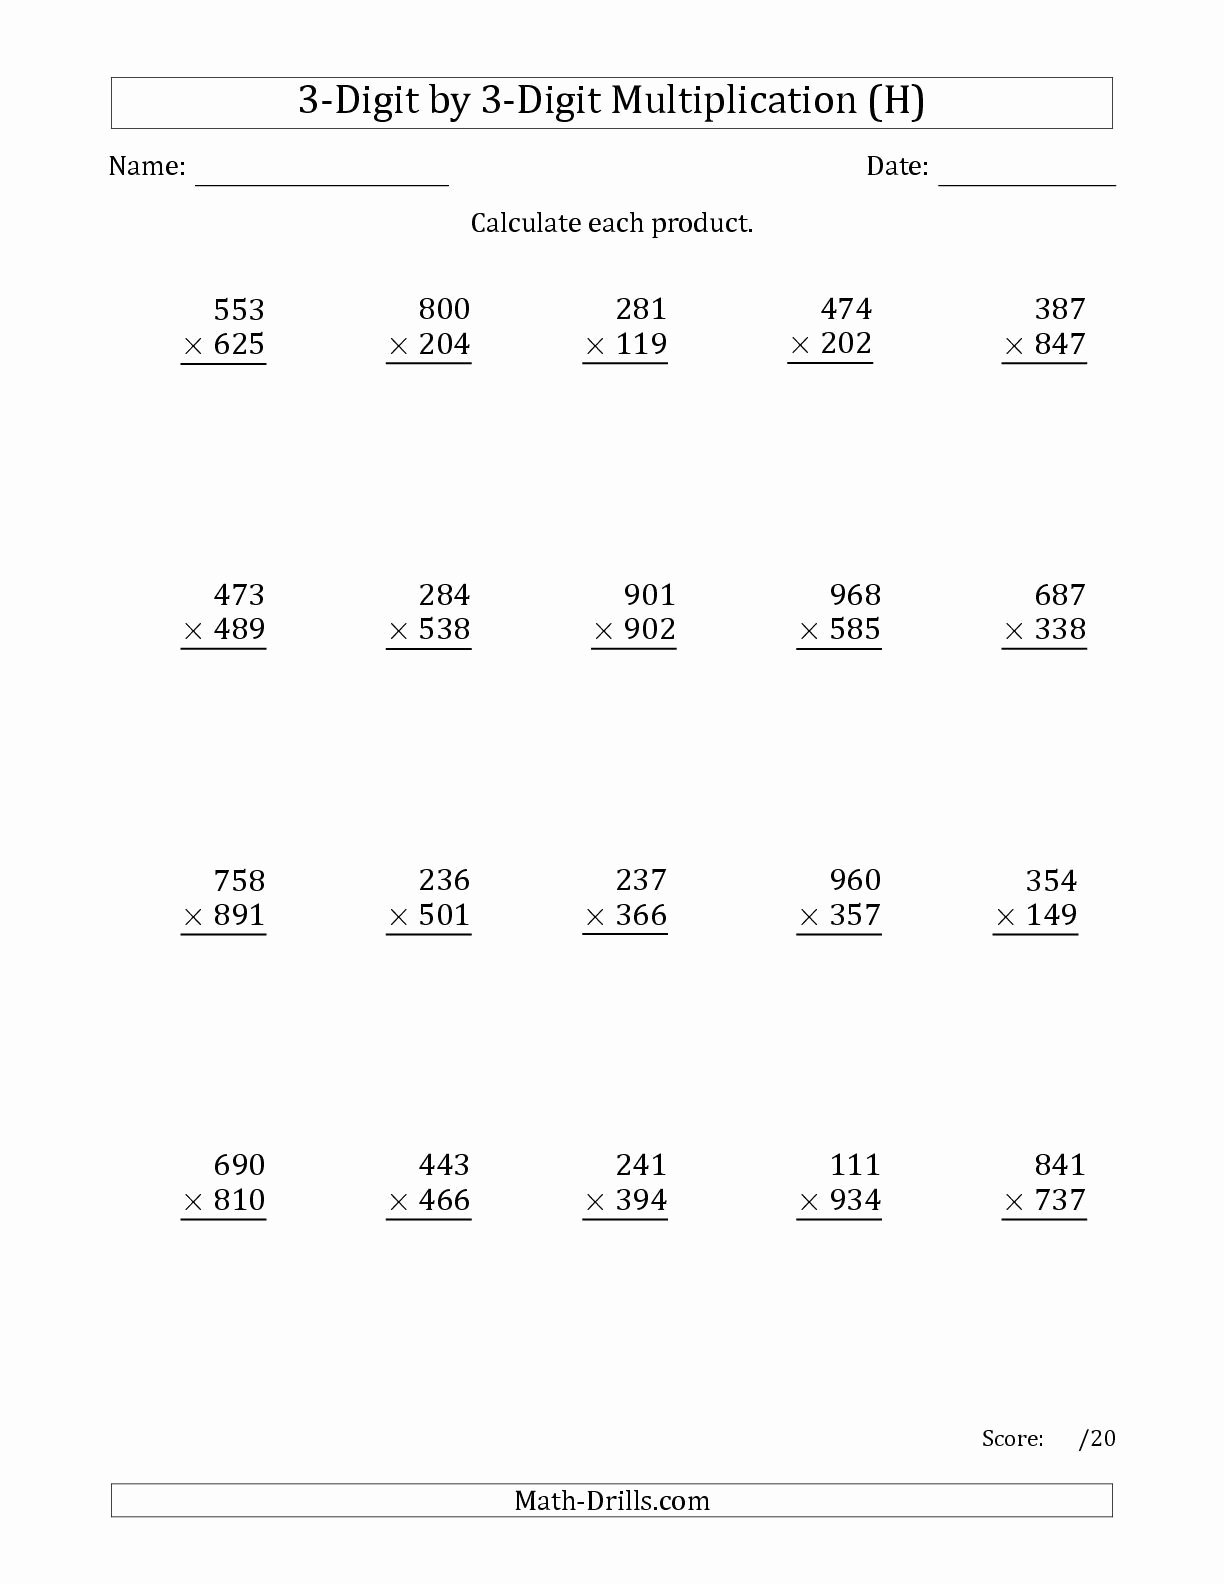 Multiplication Worksheets Grade 5 3 Digit by 2 Digit Unique the Multiplying 3 Digit by 3 Digit Numbers with Ma